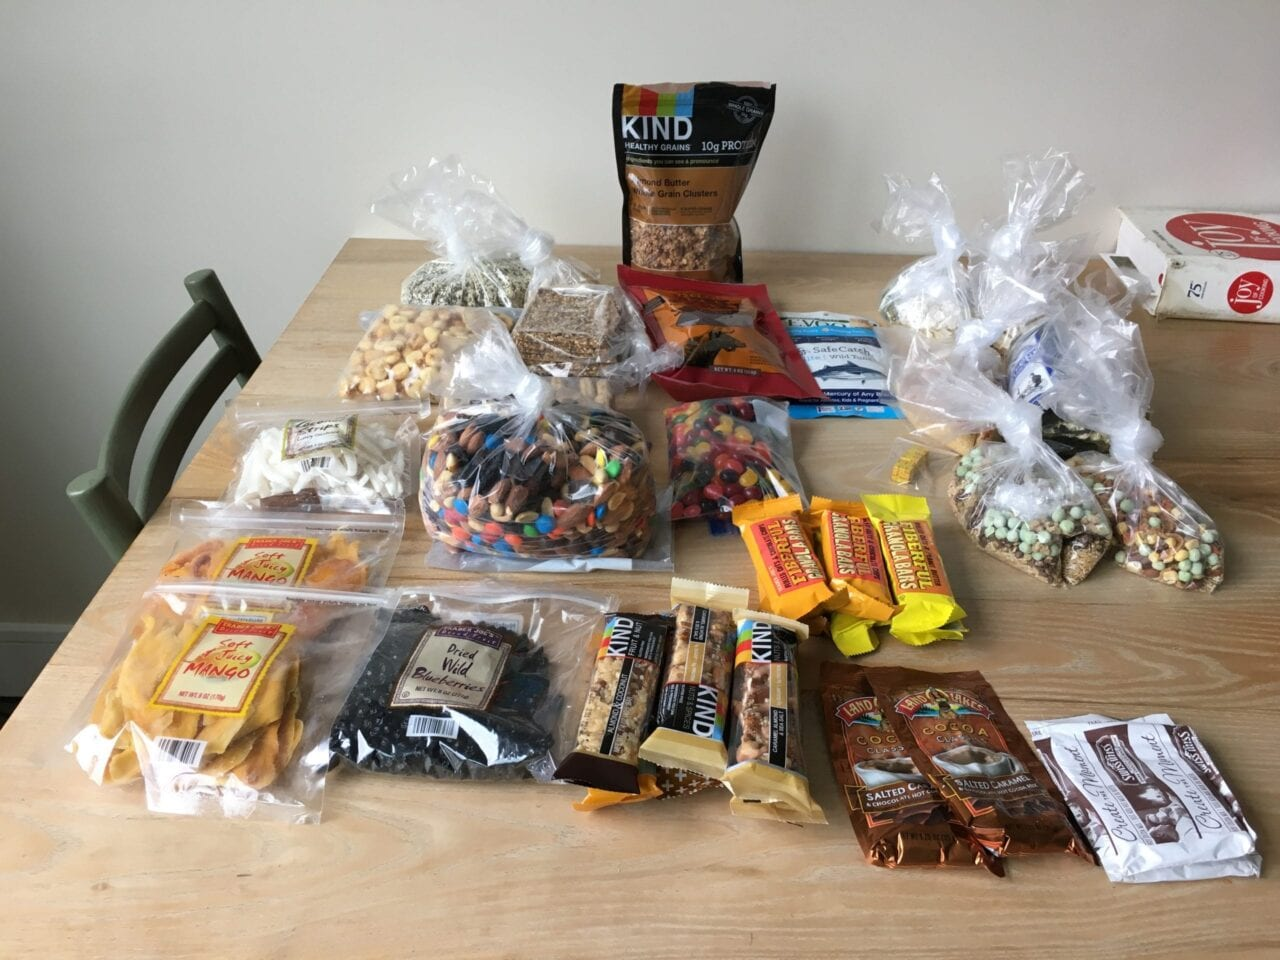 Food packed for hiking trip arranged on a table